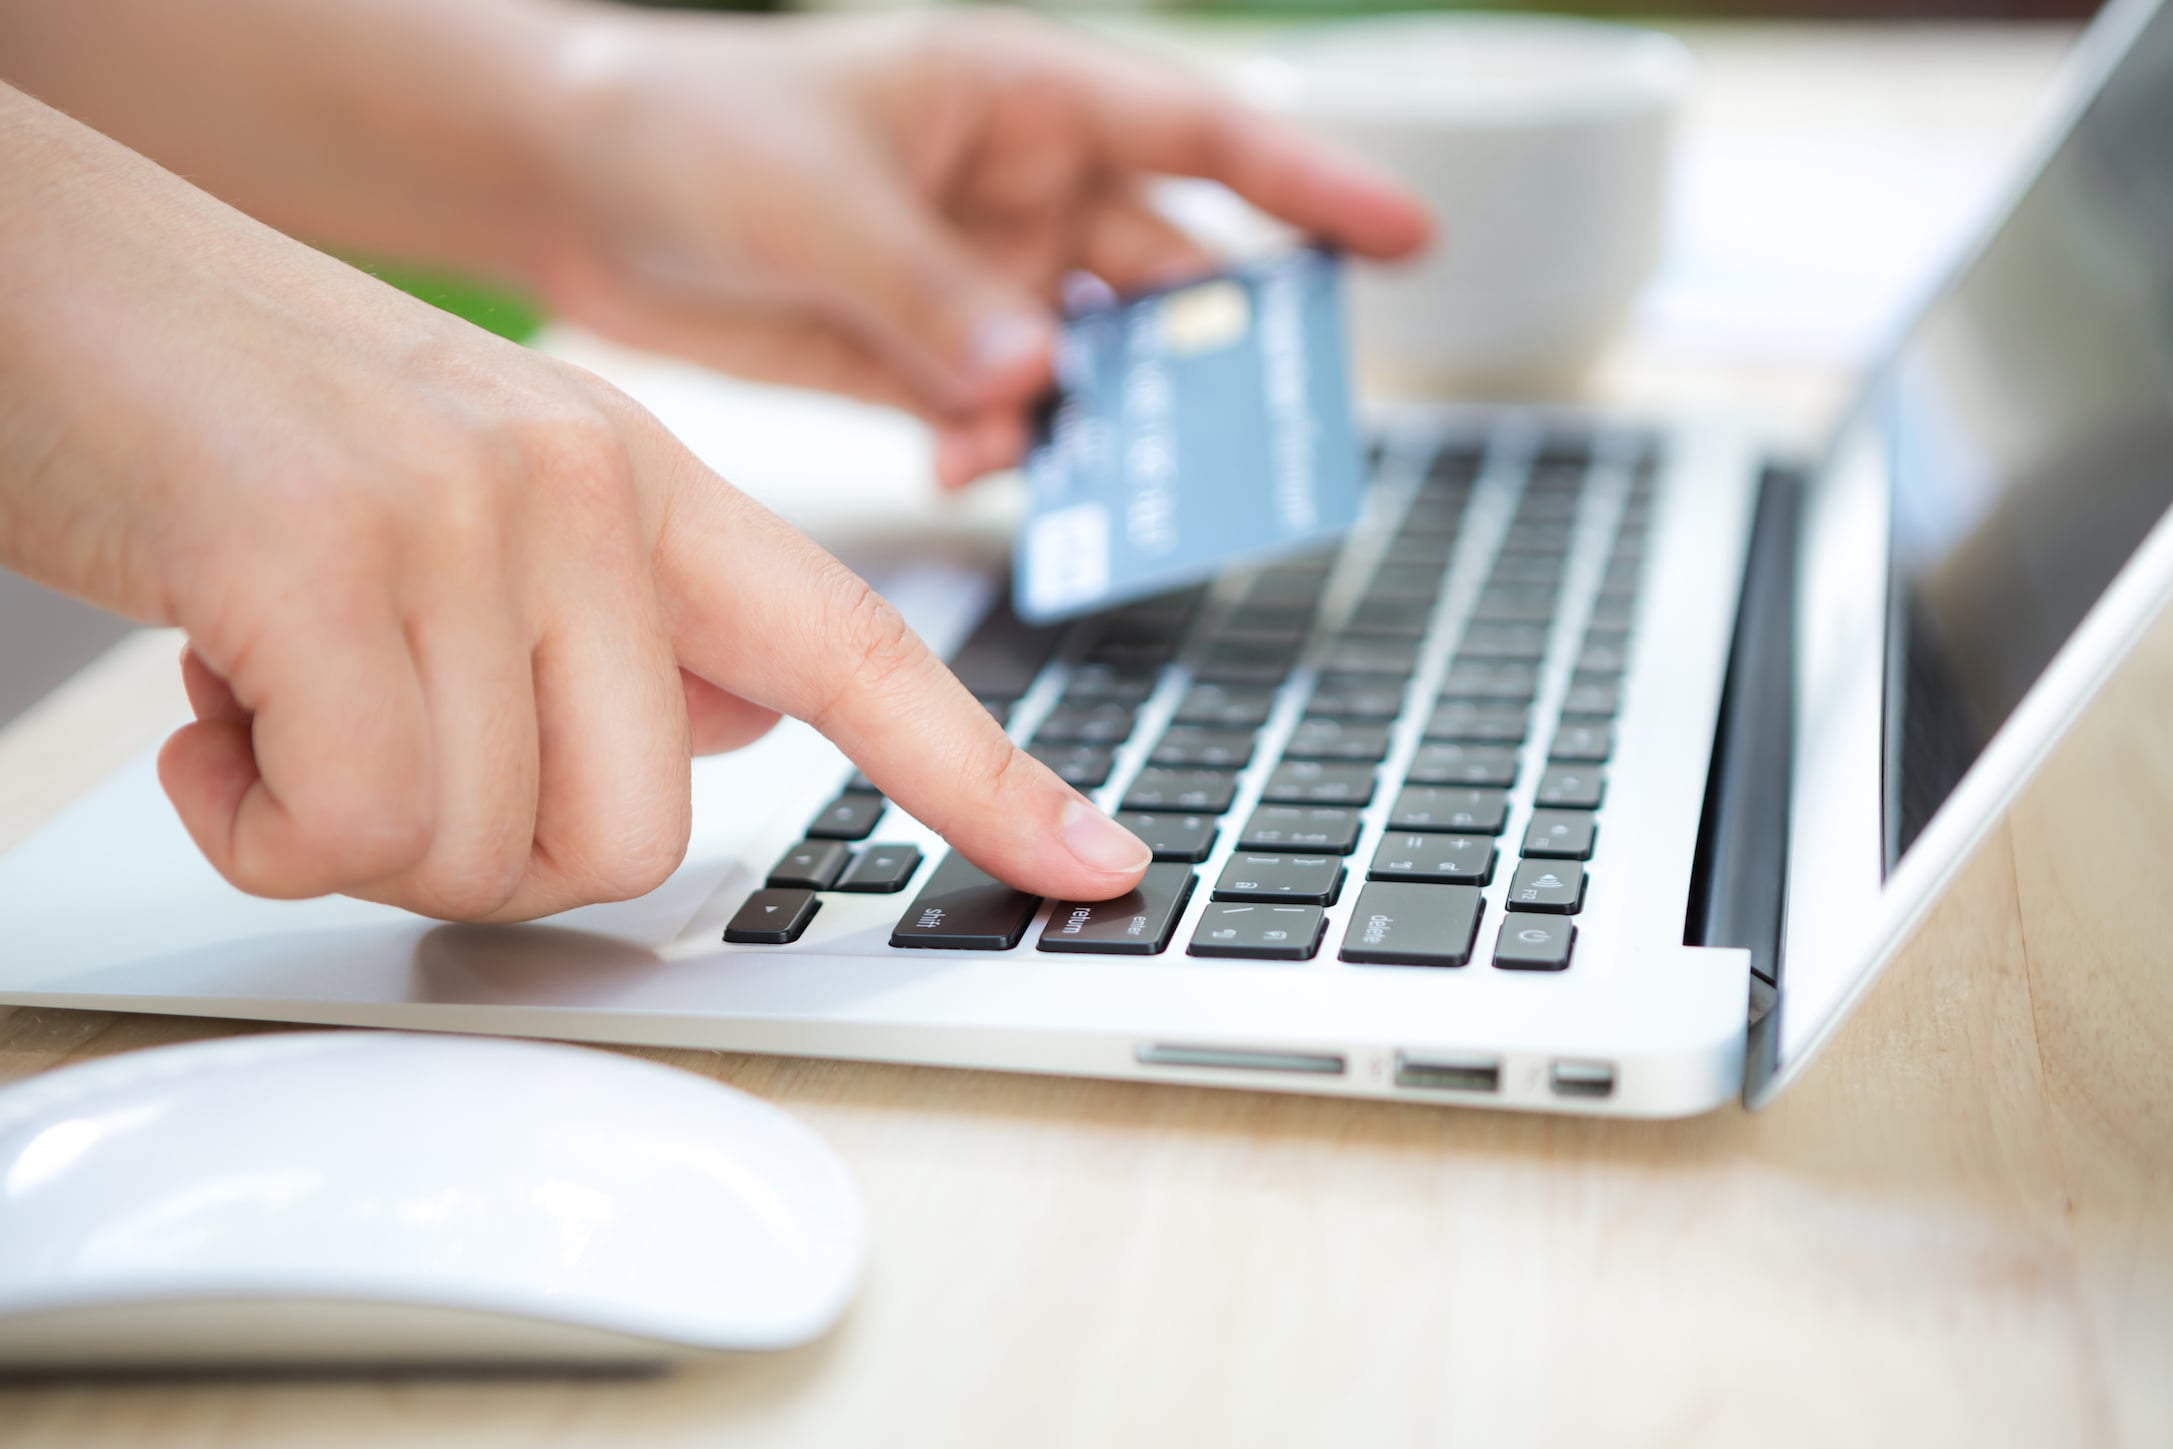 A person using stripe payment system online.